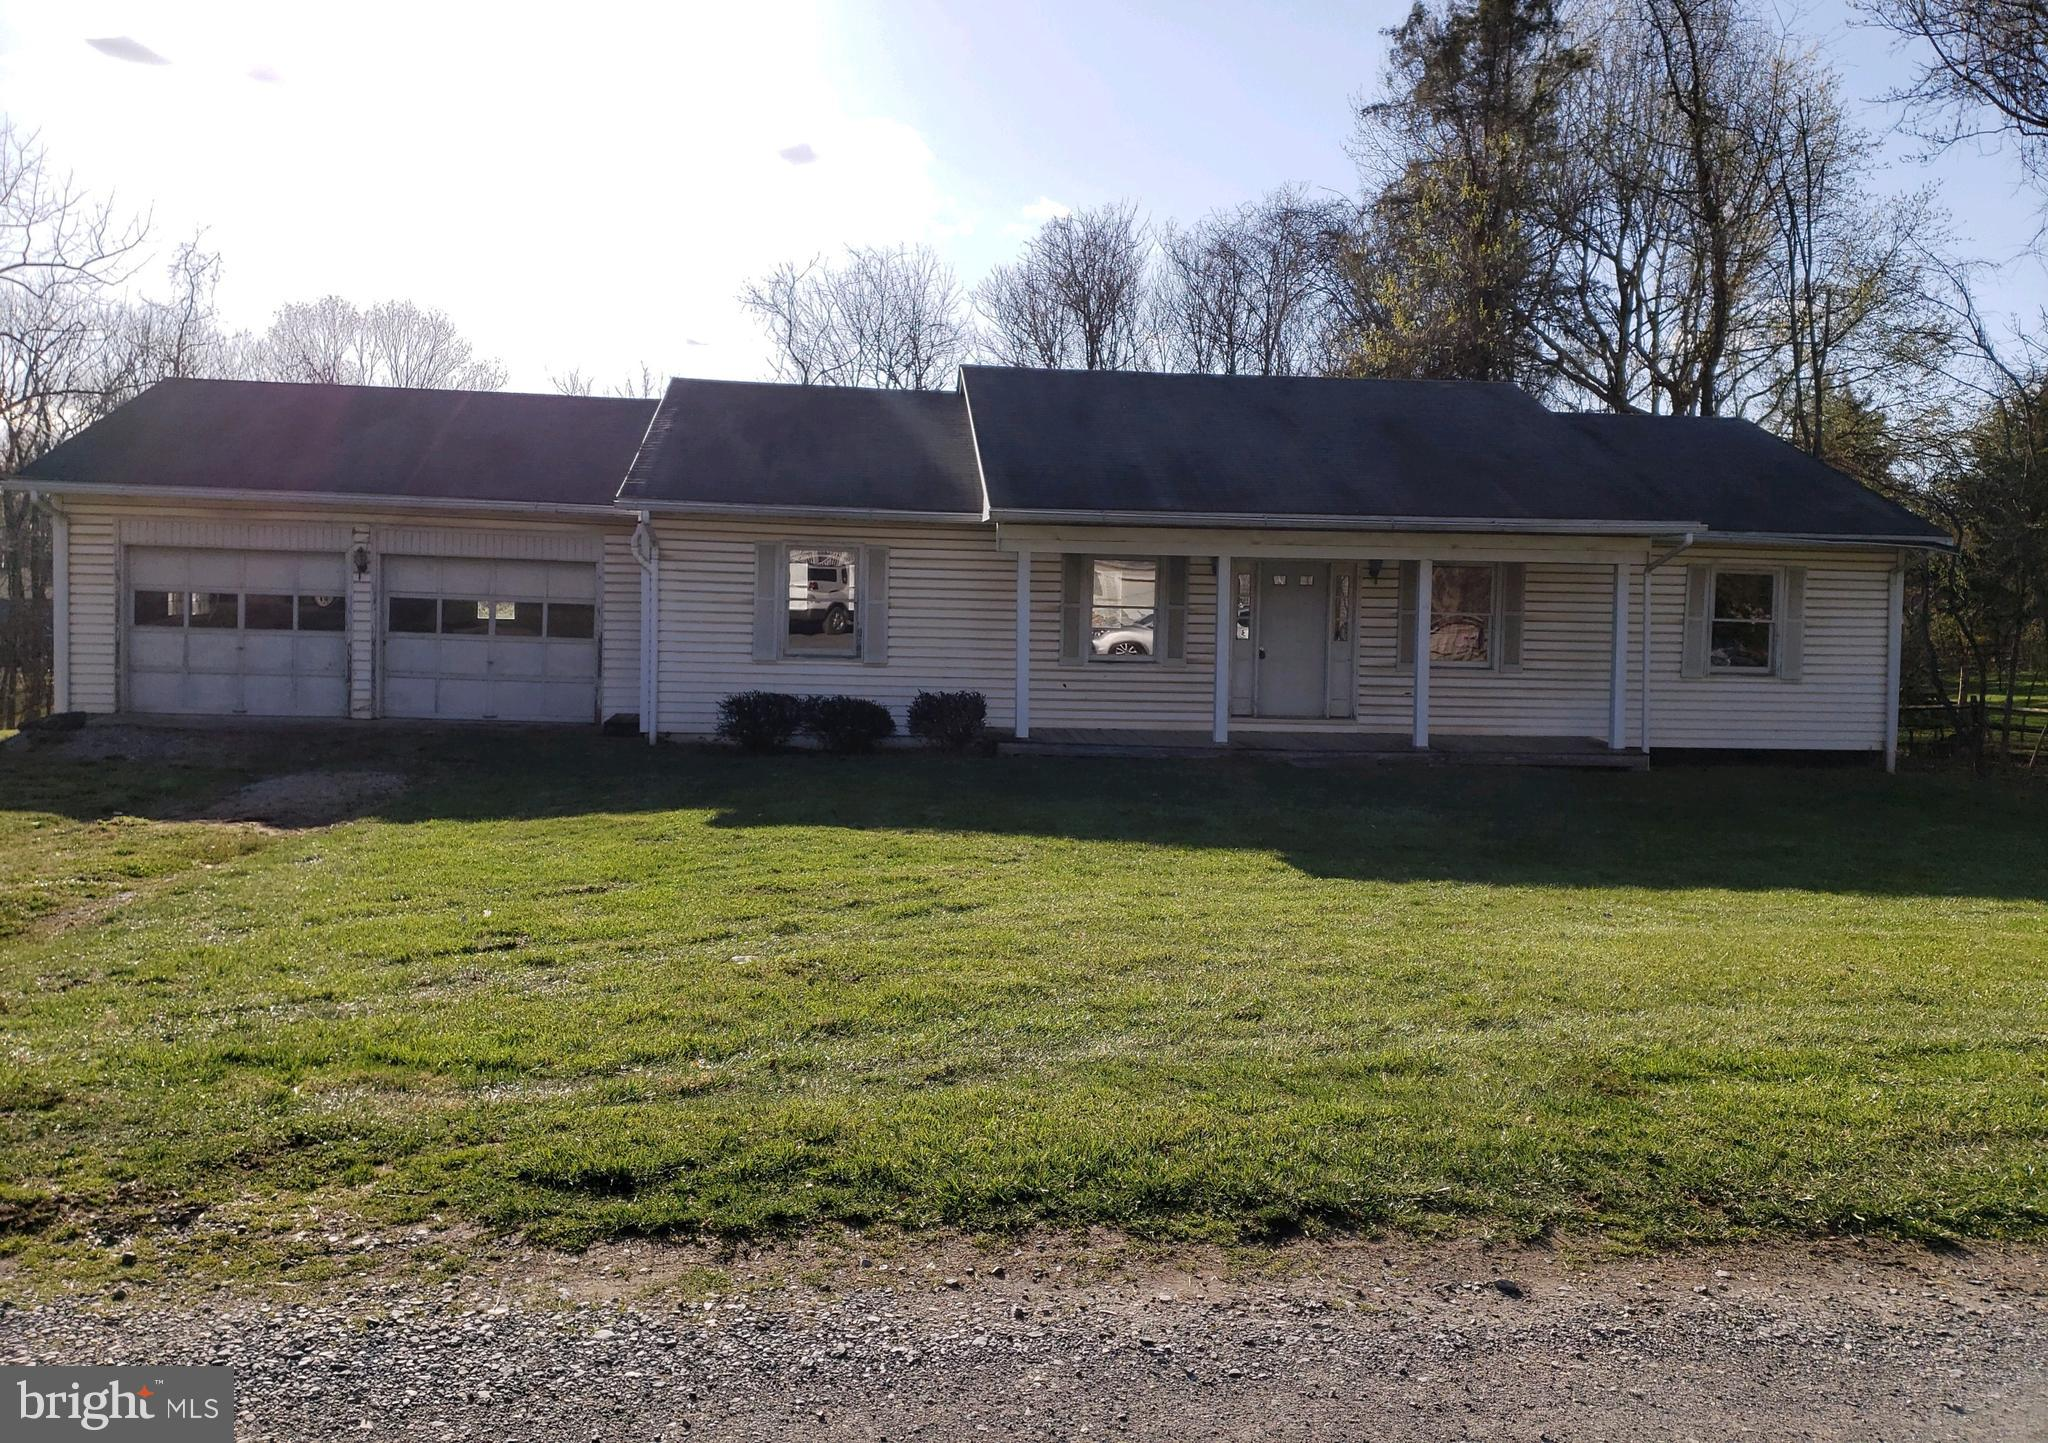 13 Crestview Dr, Harpers Ferry, WV, 25425